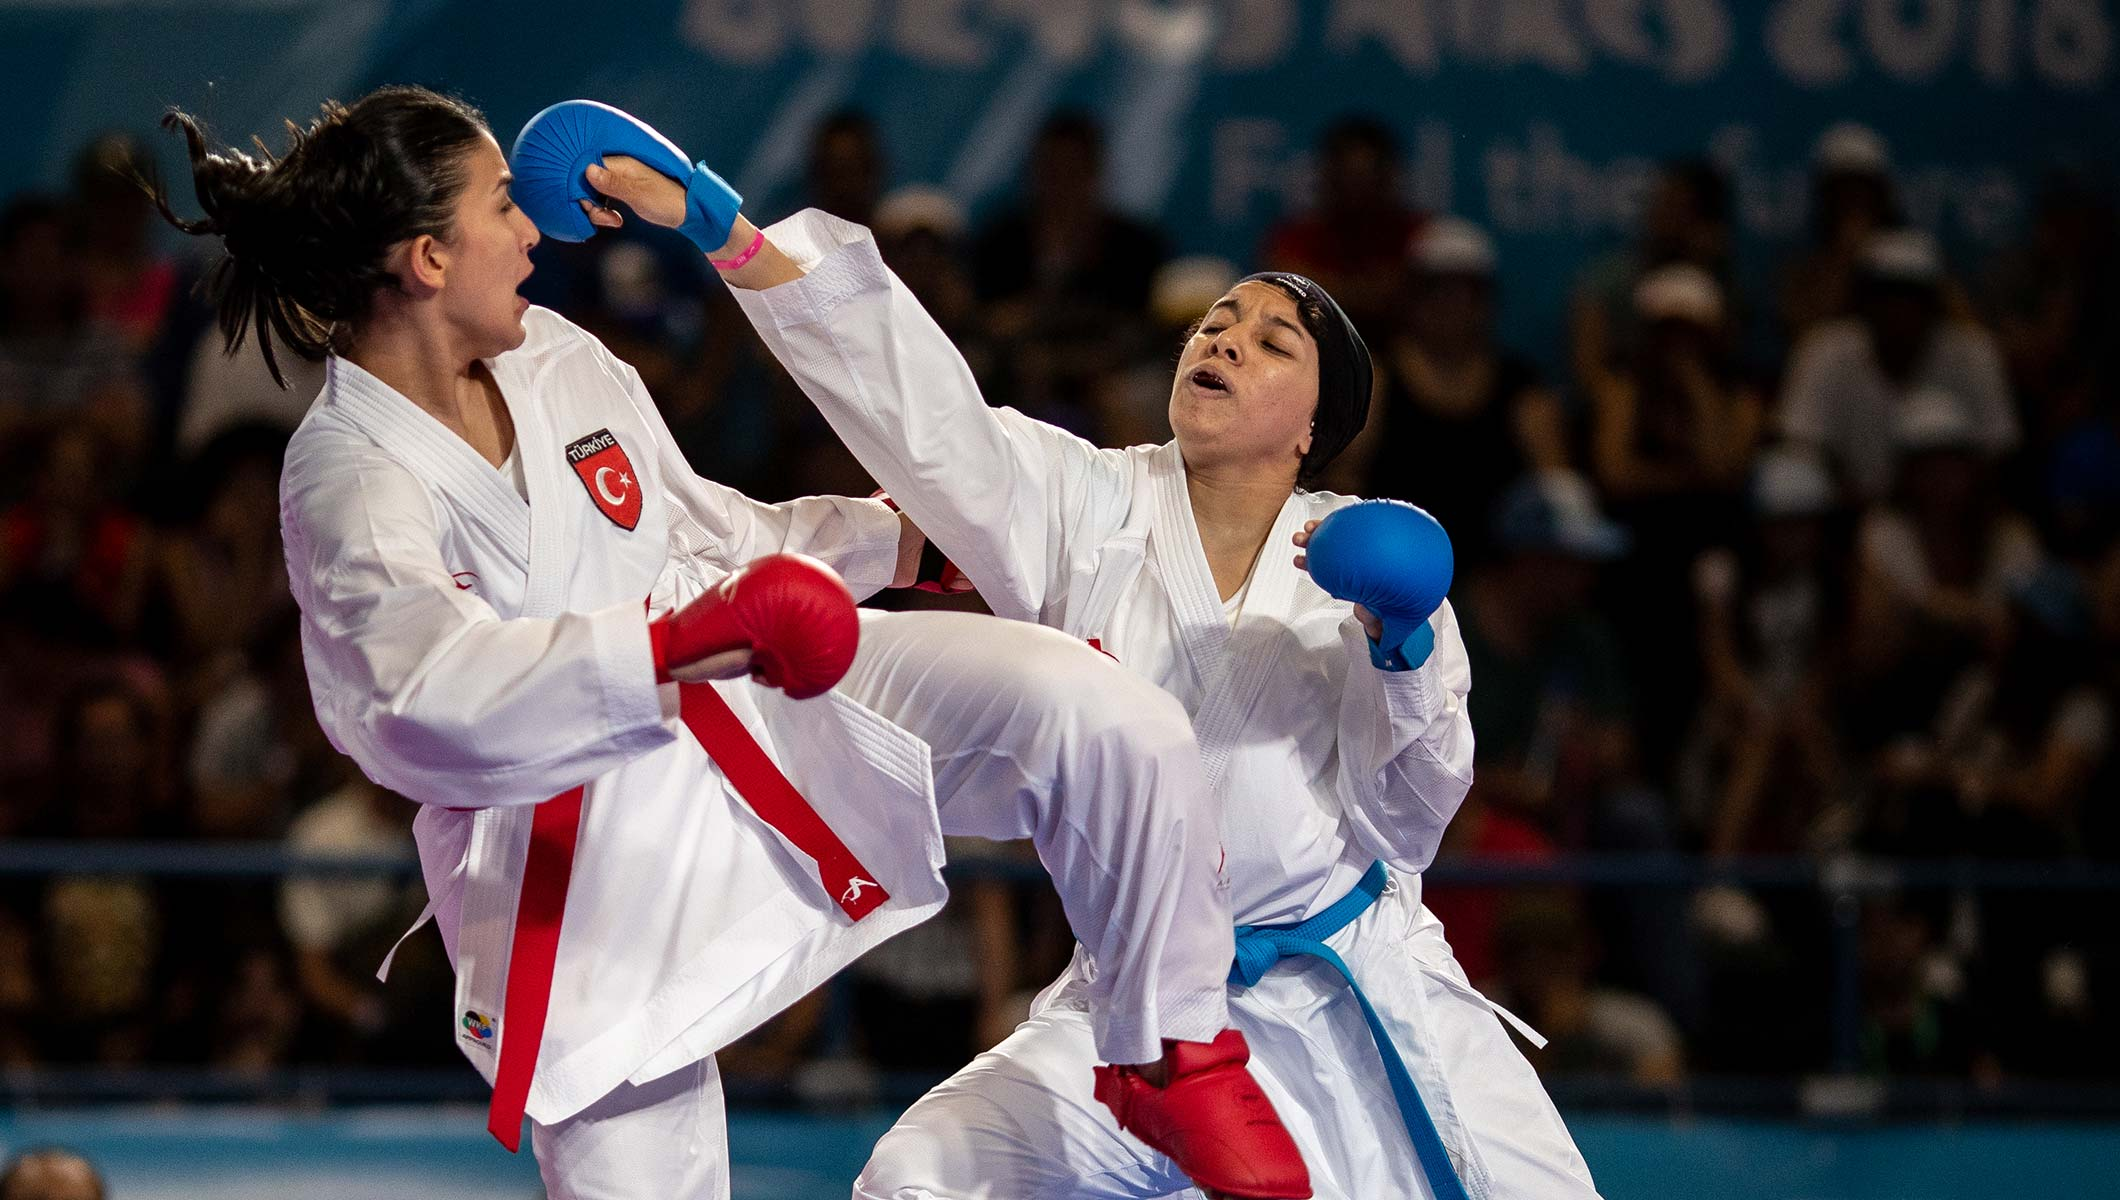 Karate at the Buenos Aires 2018 Youth Olympic Games